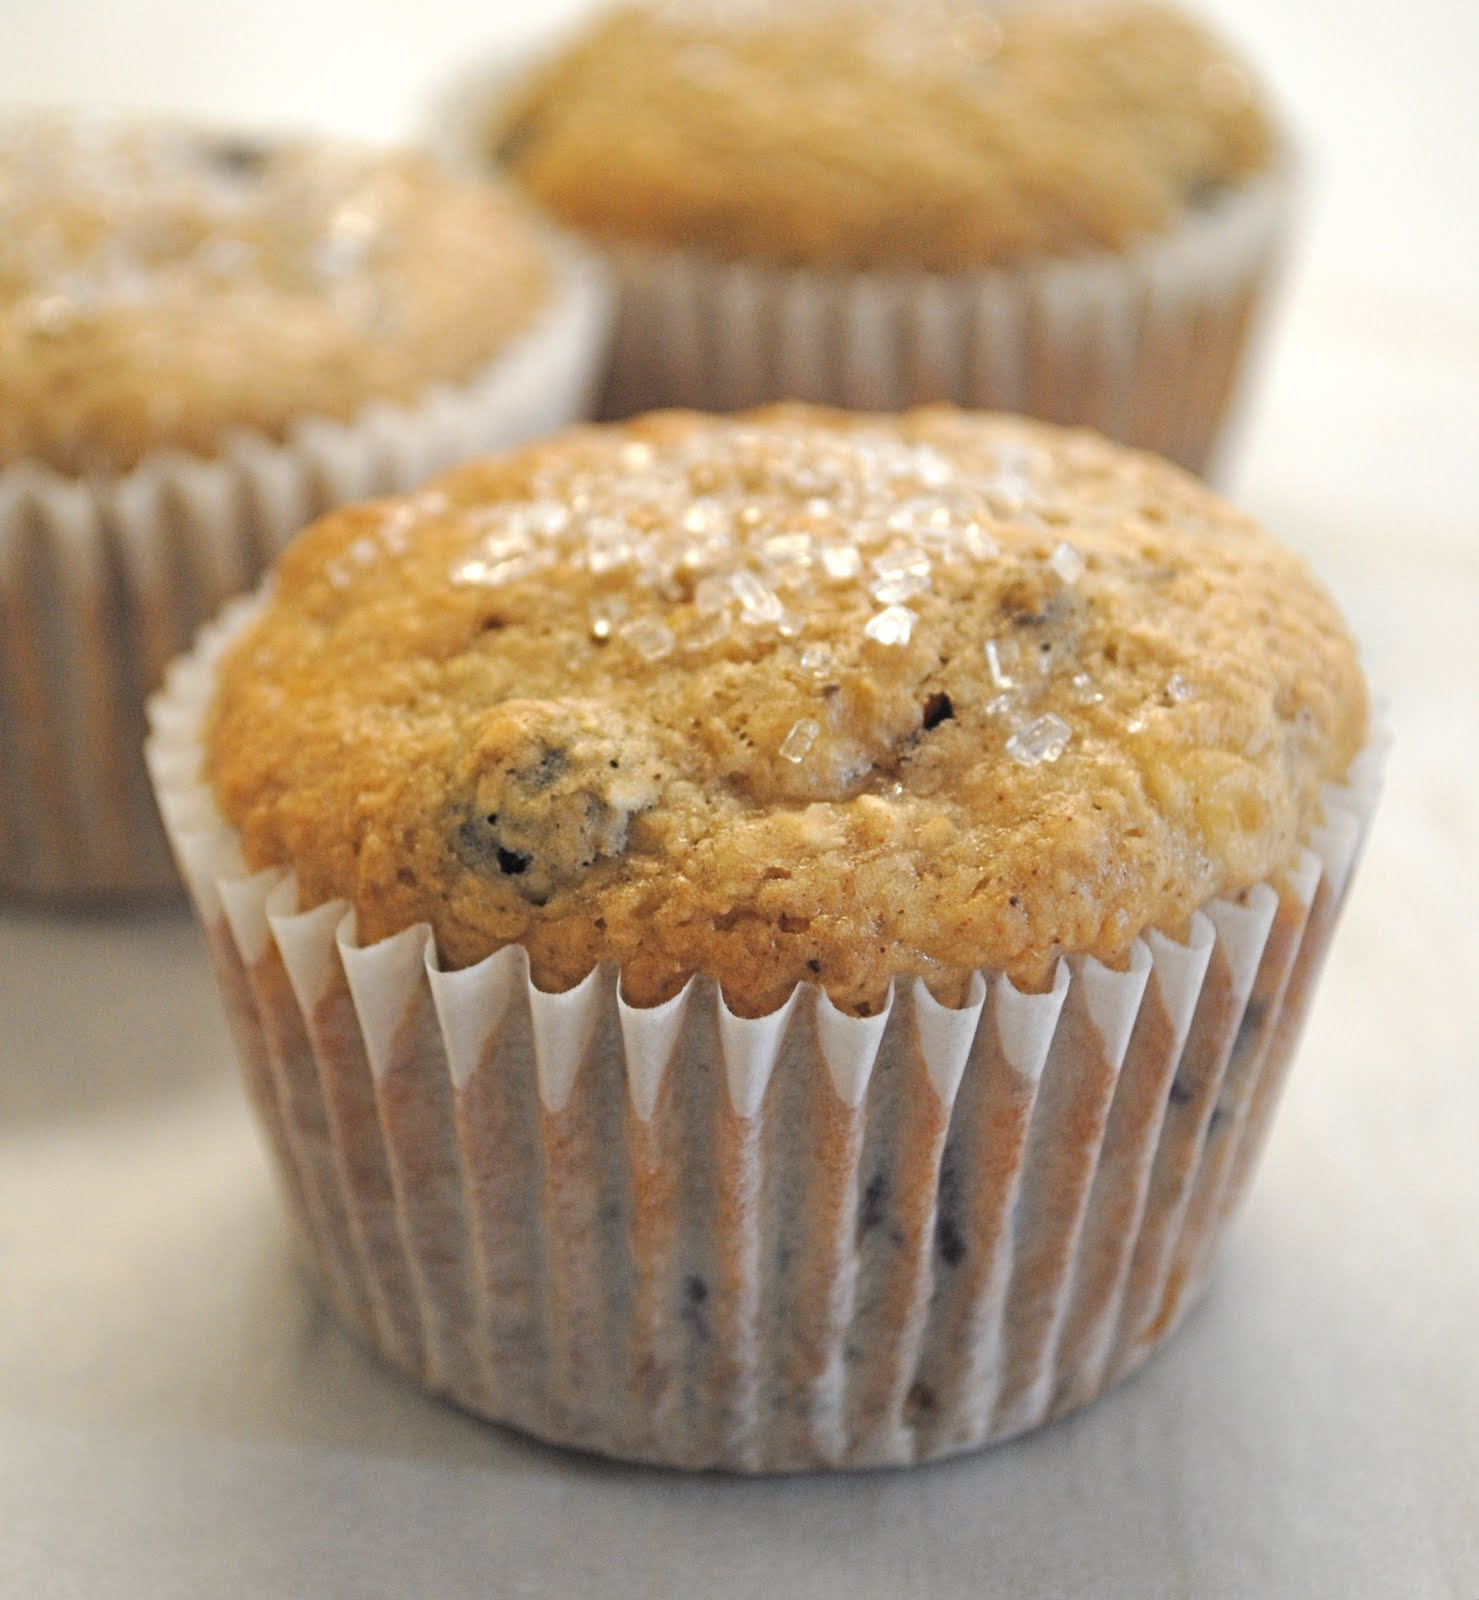 Gourmet Girl: Recipe: Healthy Banana Blueberry Muffins with Oat Bran